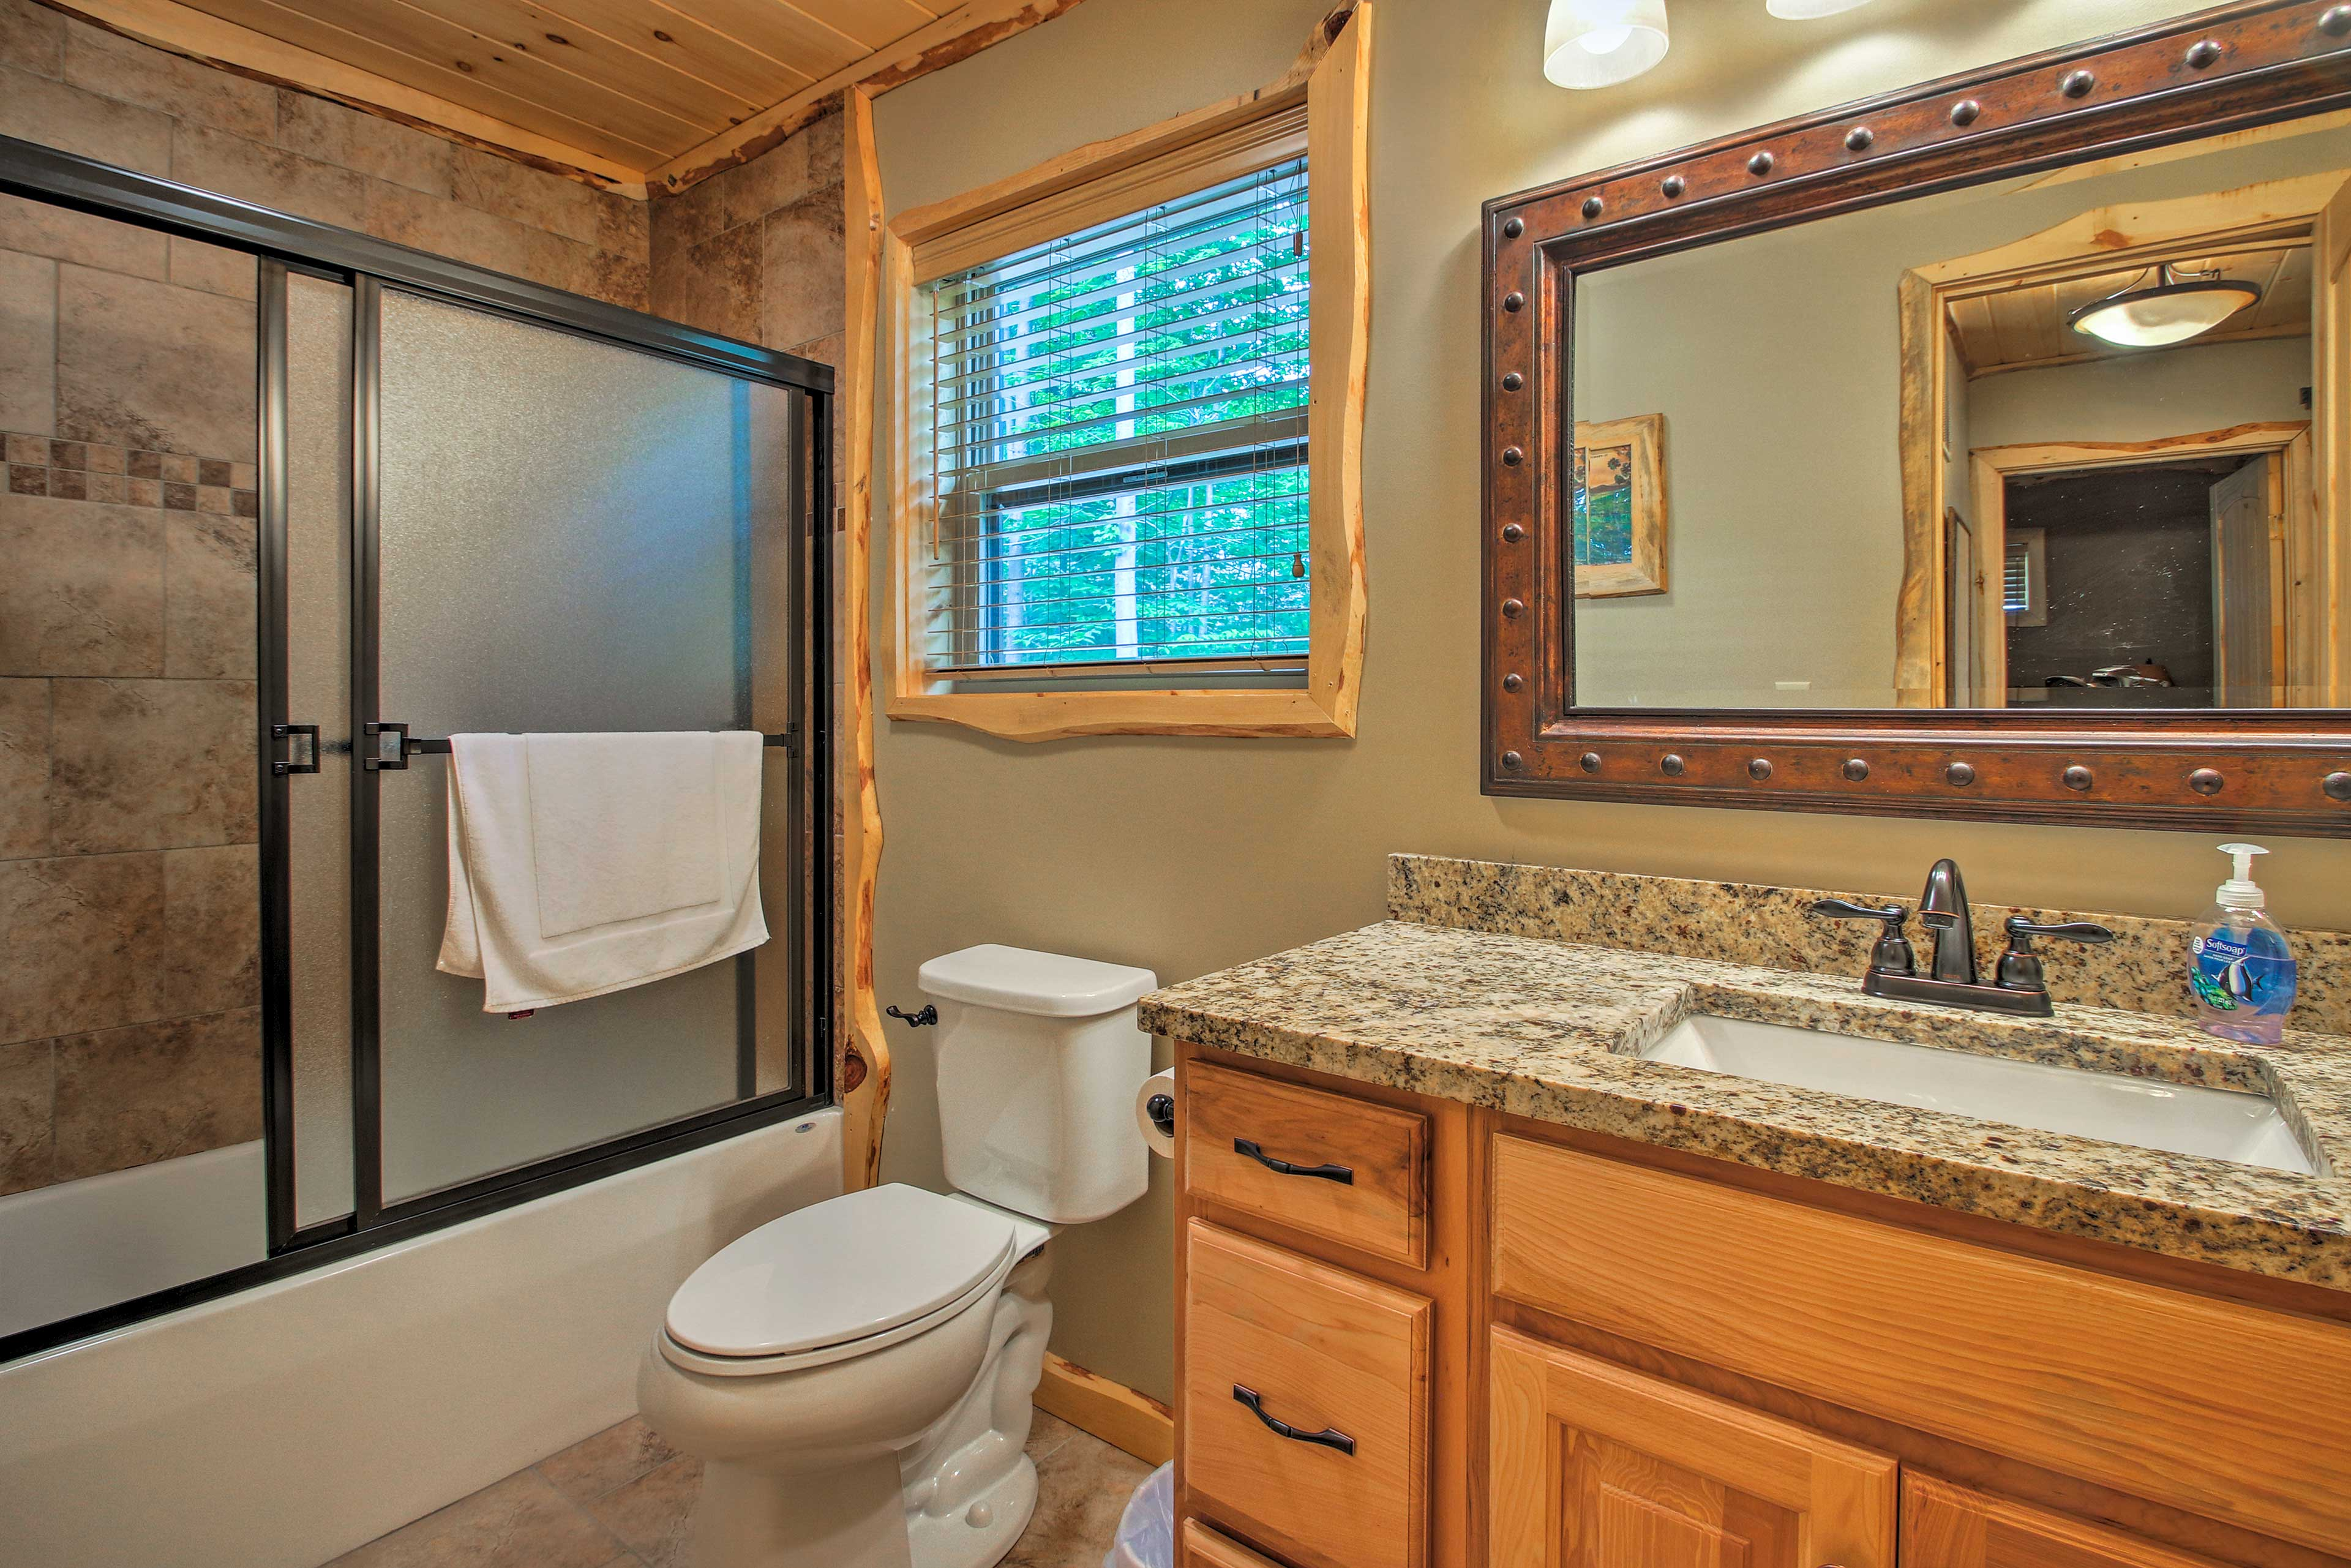 After a day on the mountain, enjoy a cleansing shower in the full bathroom.